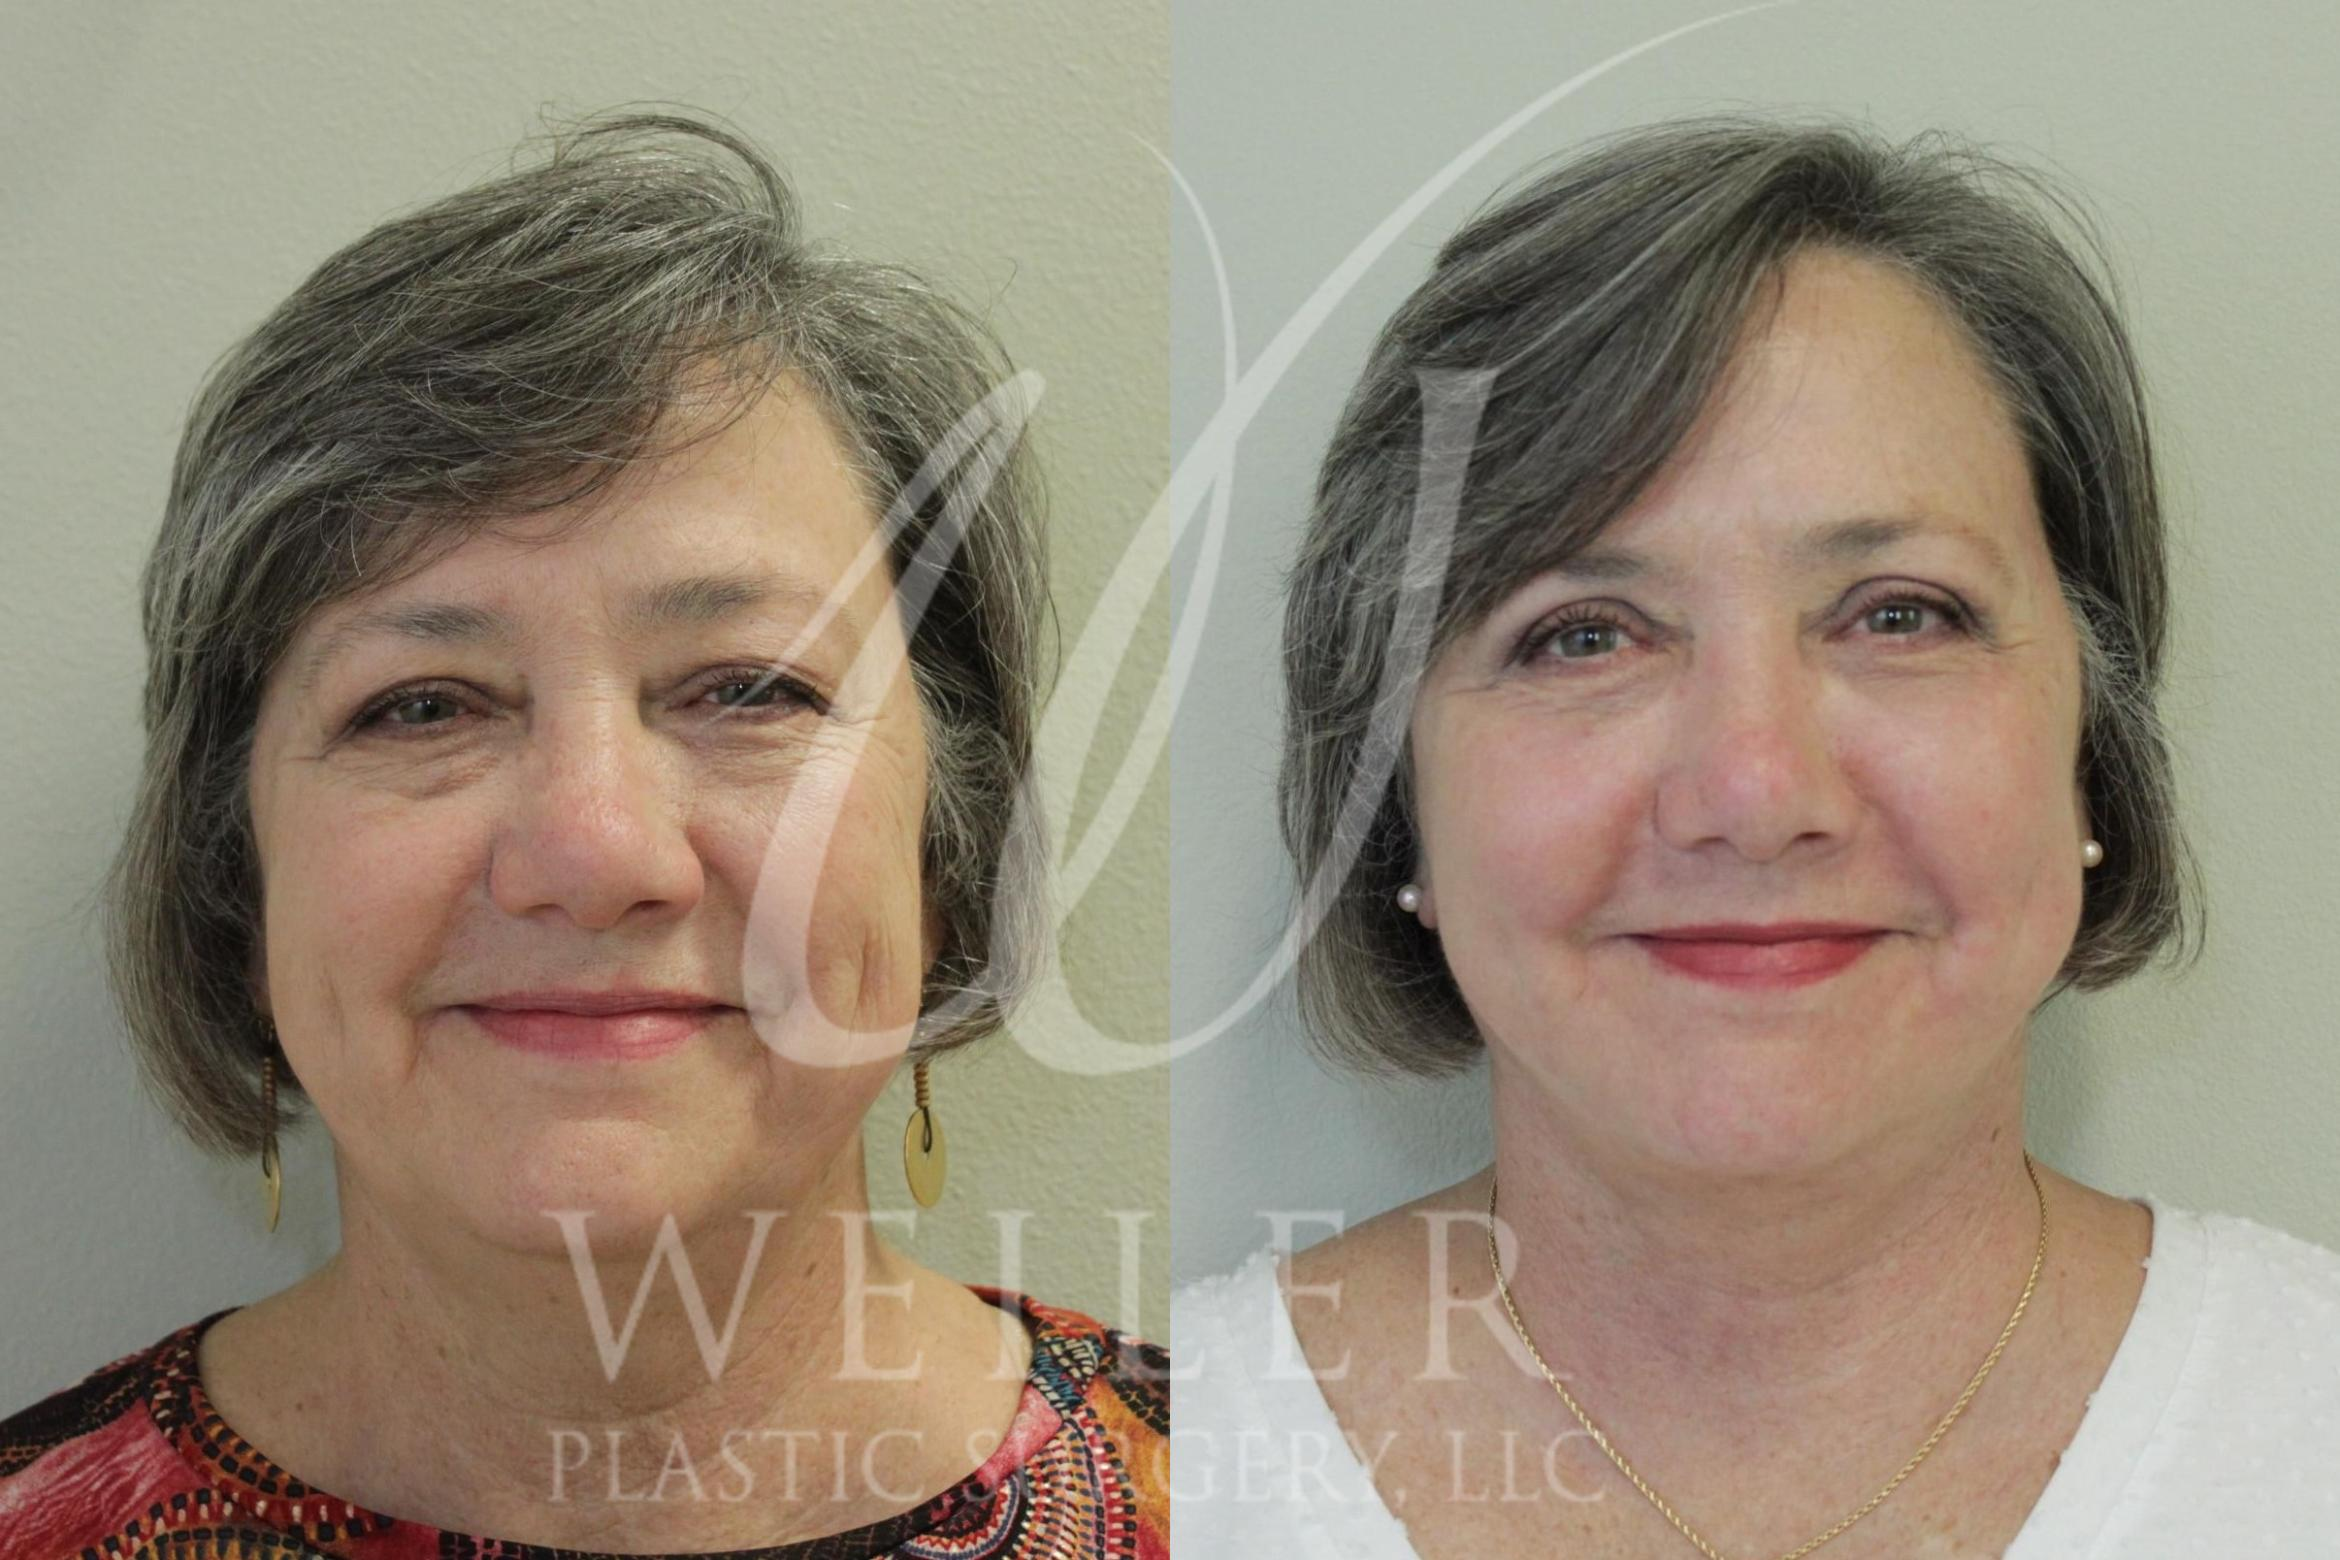 Facelift Before & After Photo | Baton Rouge, Louisiana | Weiler Plastic Surgery